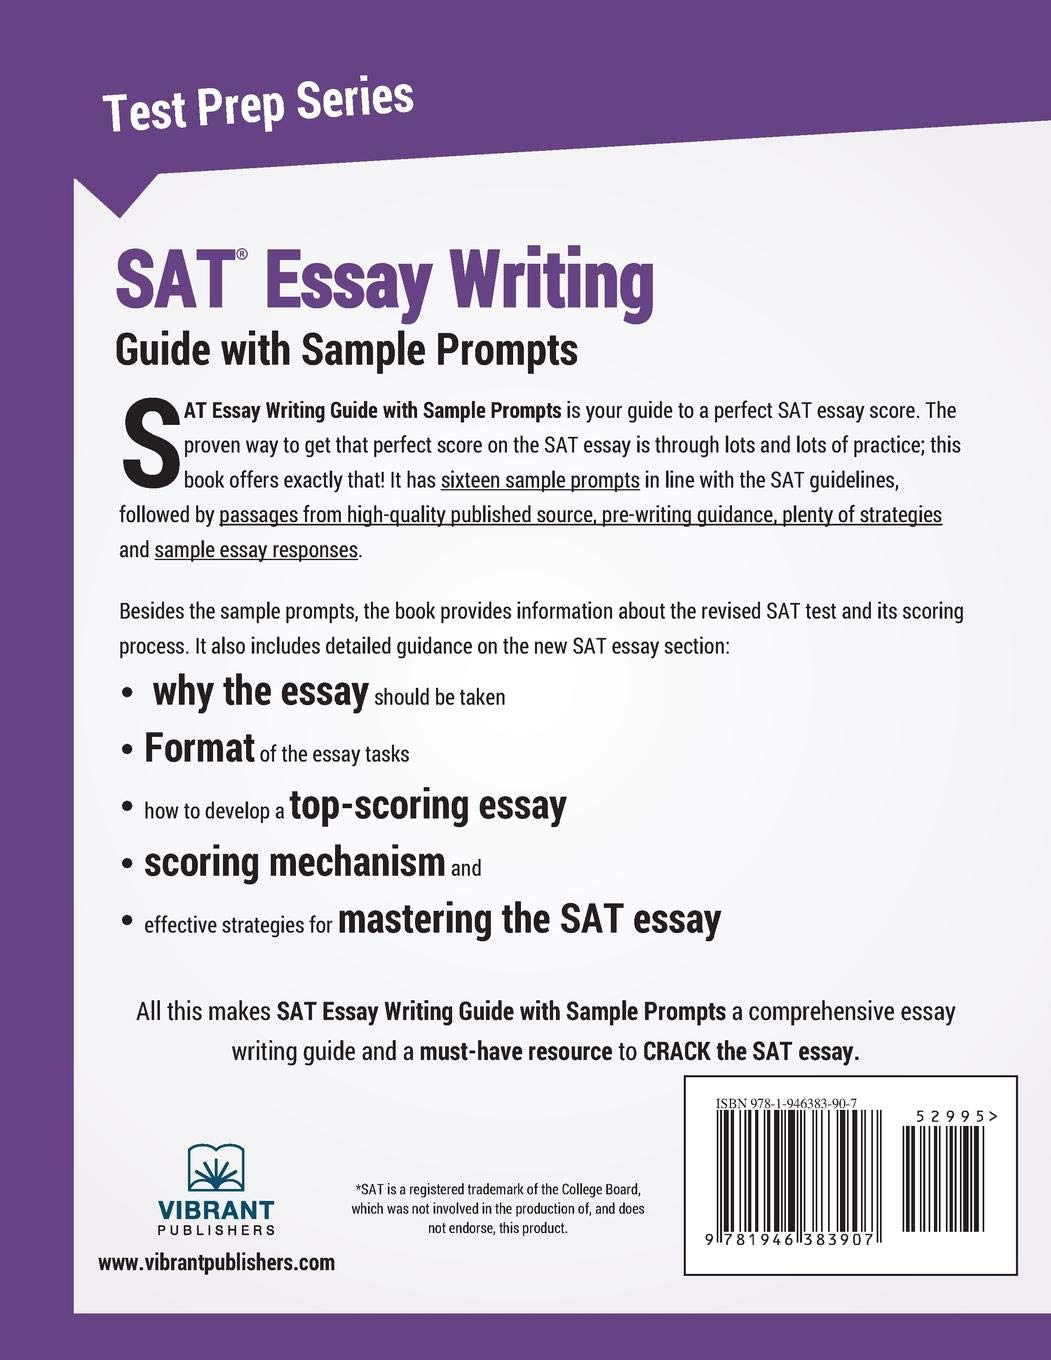 SAT Essay Writing Guide With Sample Prompts Volume 30 Test Prep Amazonin Vibrant Publishers Books